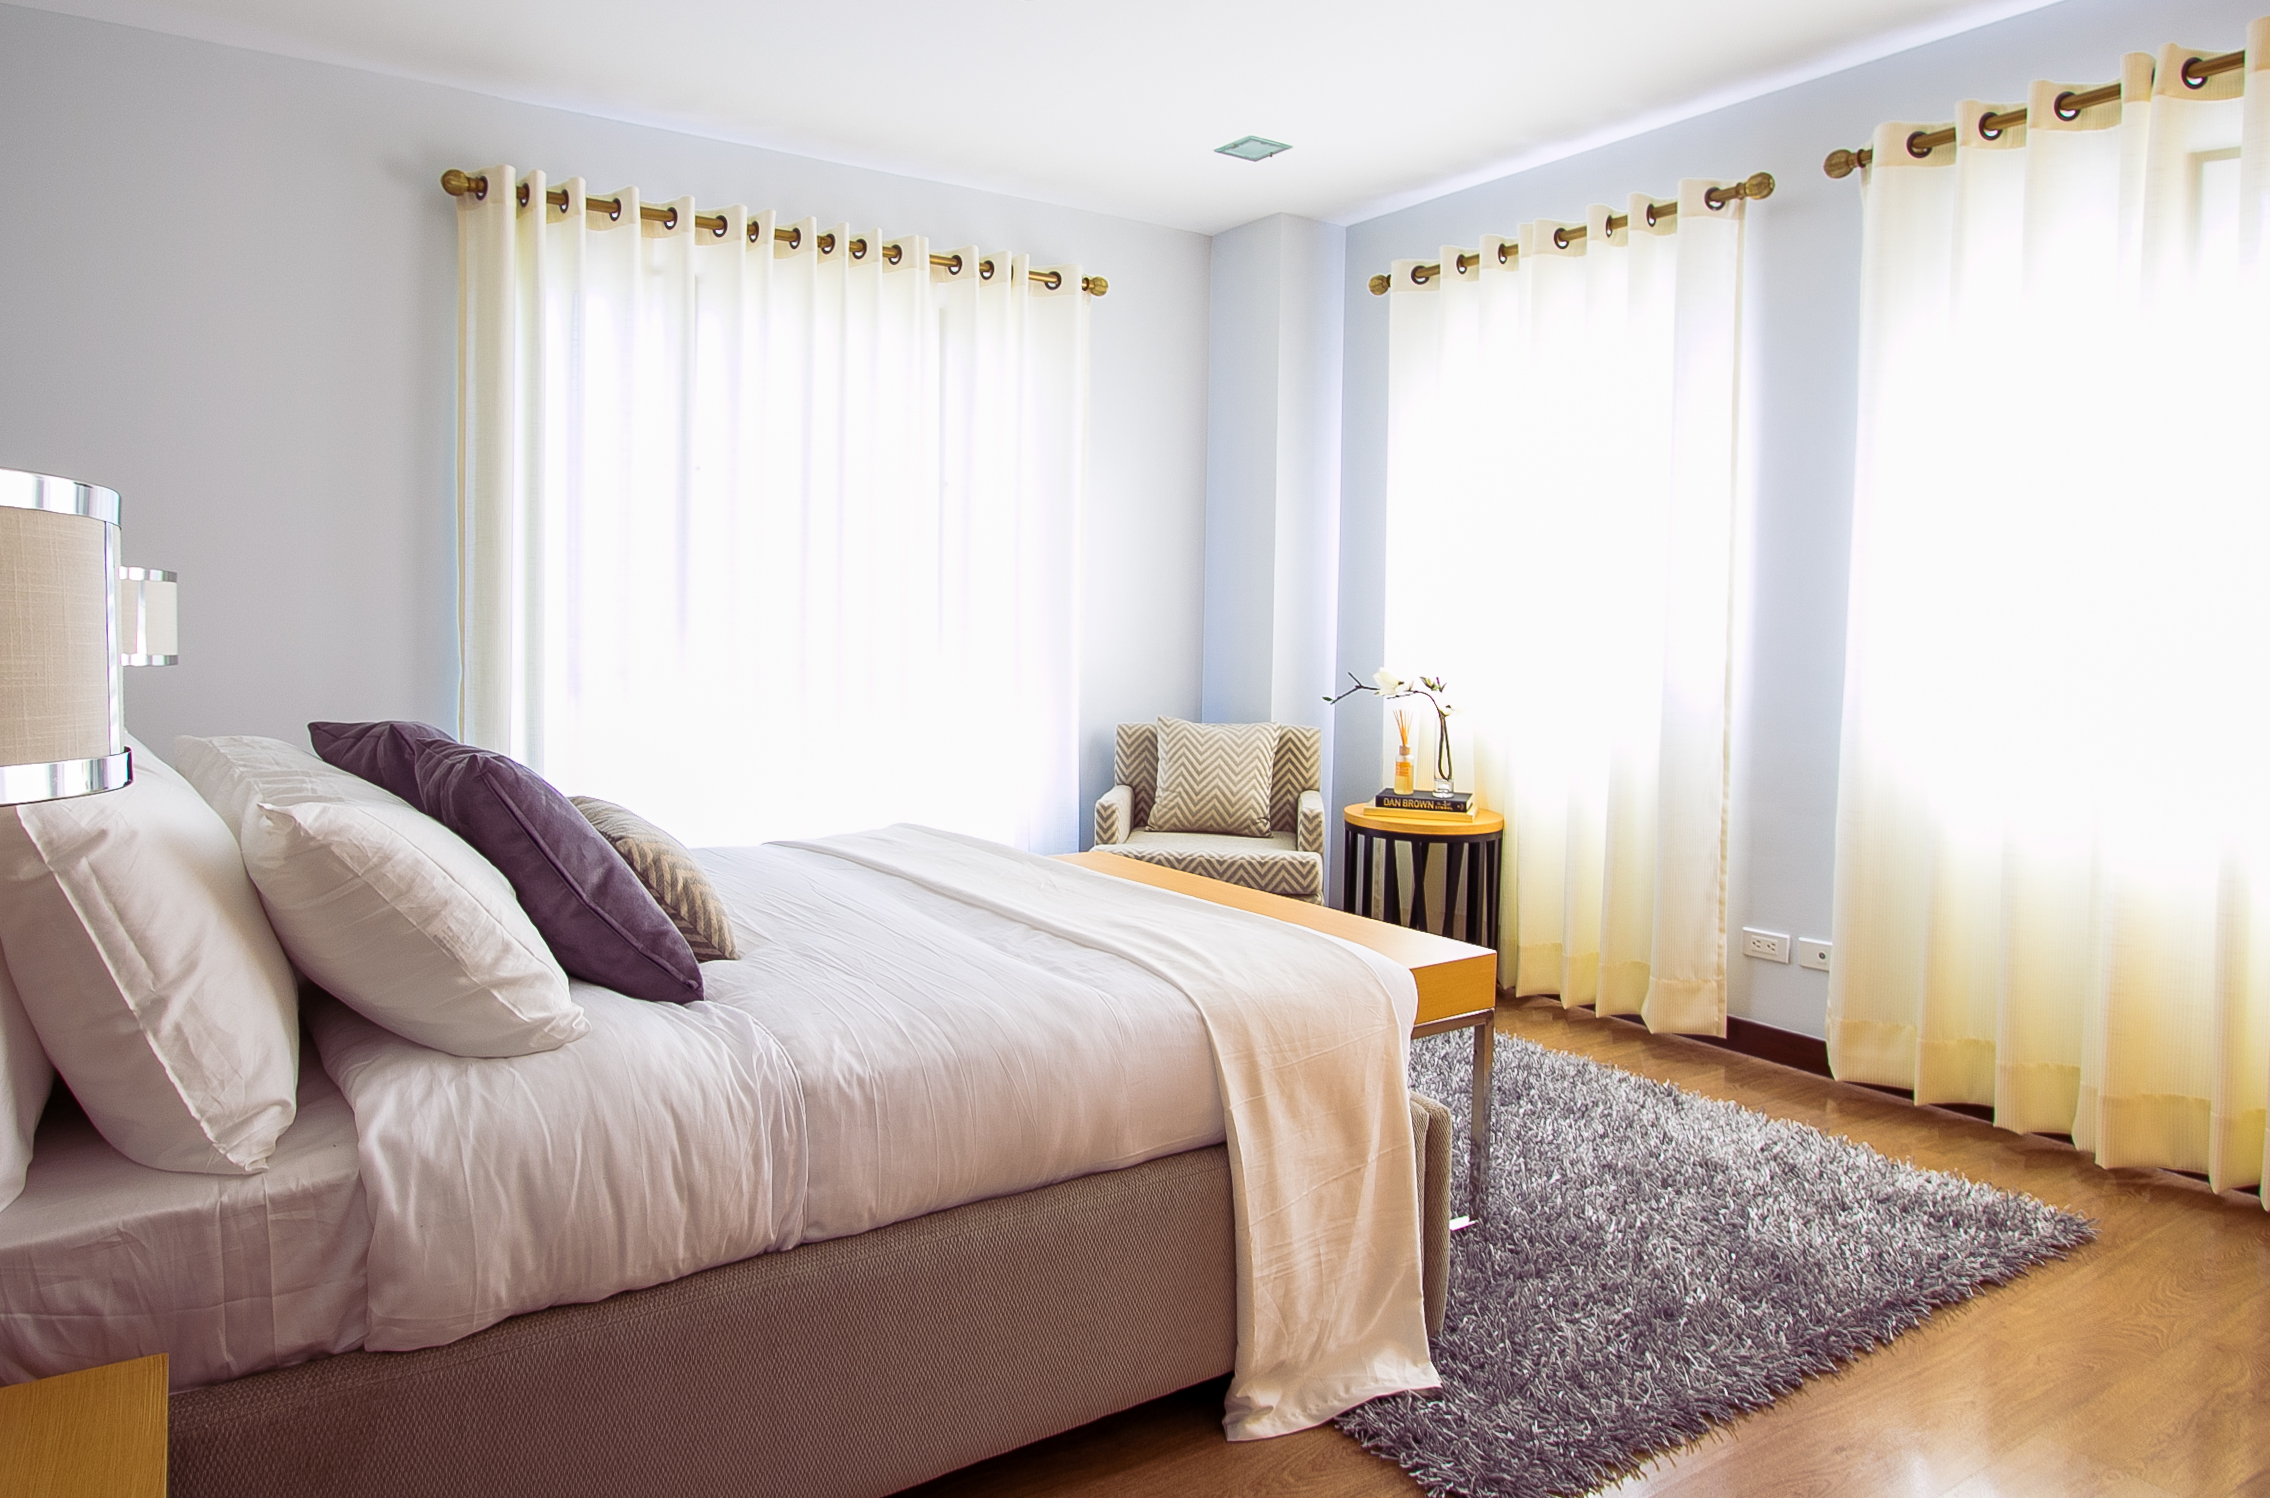 West Chester, PA Sleep Hygiene Therapy Counseling